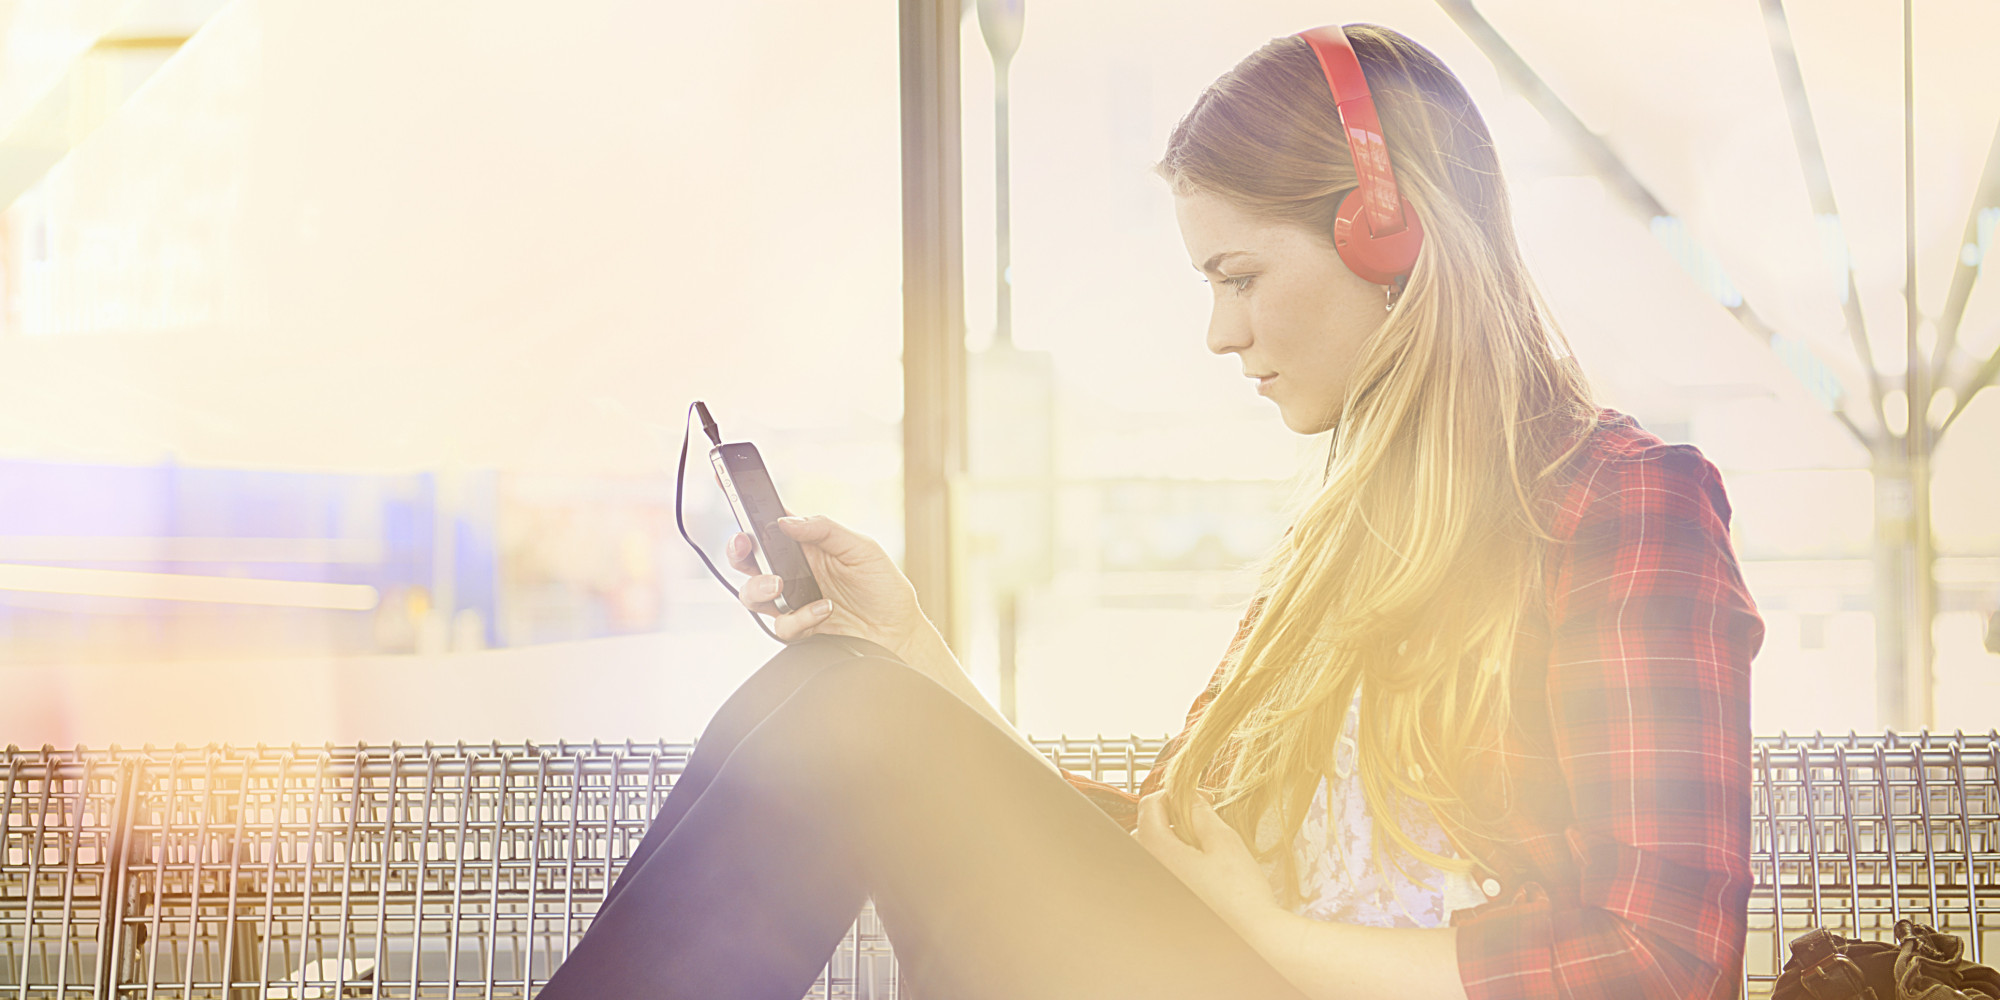 Learn to Master your Apple Devices through Podcasts